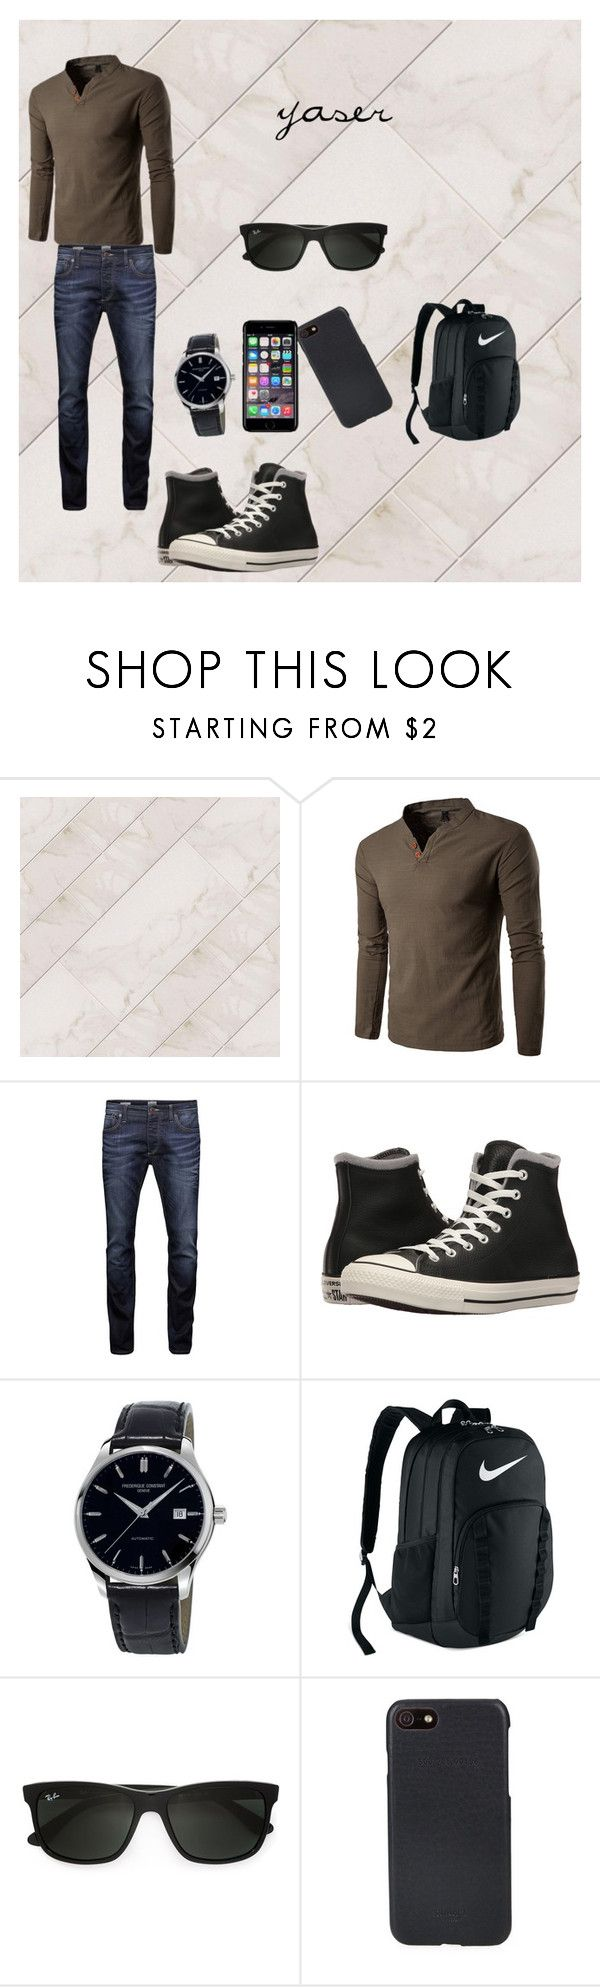 """""""."""" by yasser-151555 ❤ liked on Polyvore featuring Jack & Jones, Converse, Frédérique Constant, NIKE, Ray-Ban, Shinola, Off-White, men's fashion and menswear"""